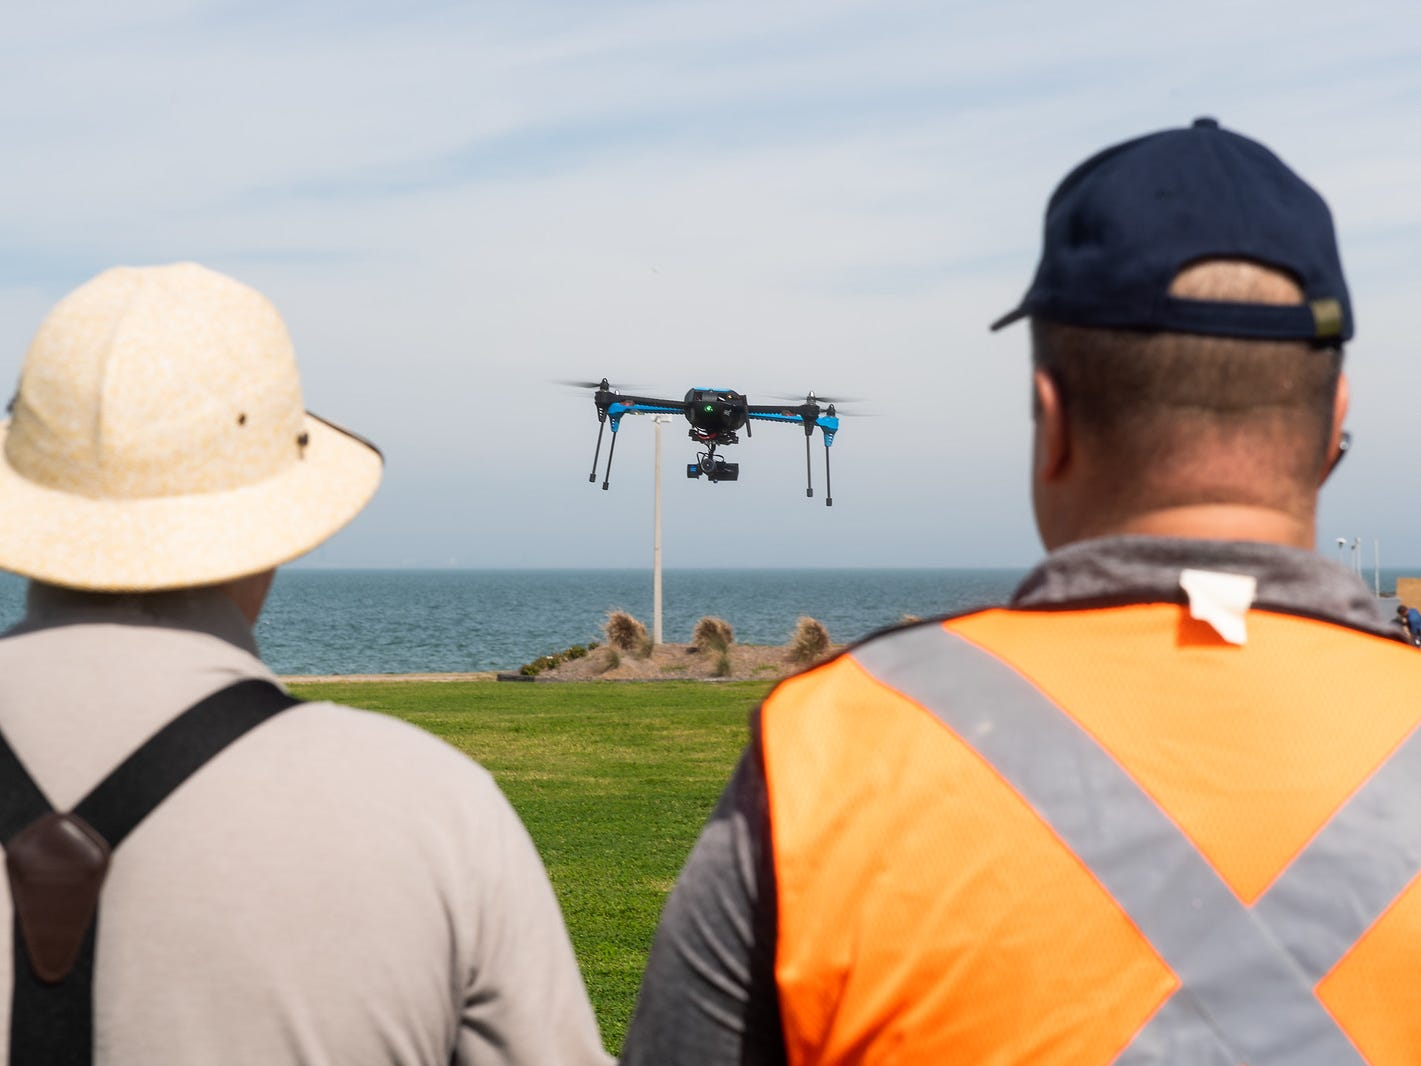 NASA's Unmanned Aircraft Systems Traffic Management (UTM) project selected the Lone Star UAS Center of Excellence & Innovation at Texas A&M University-Corpus Christi to test drone traffic management.